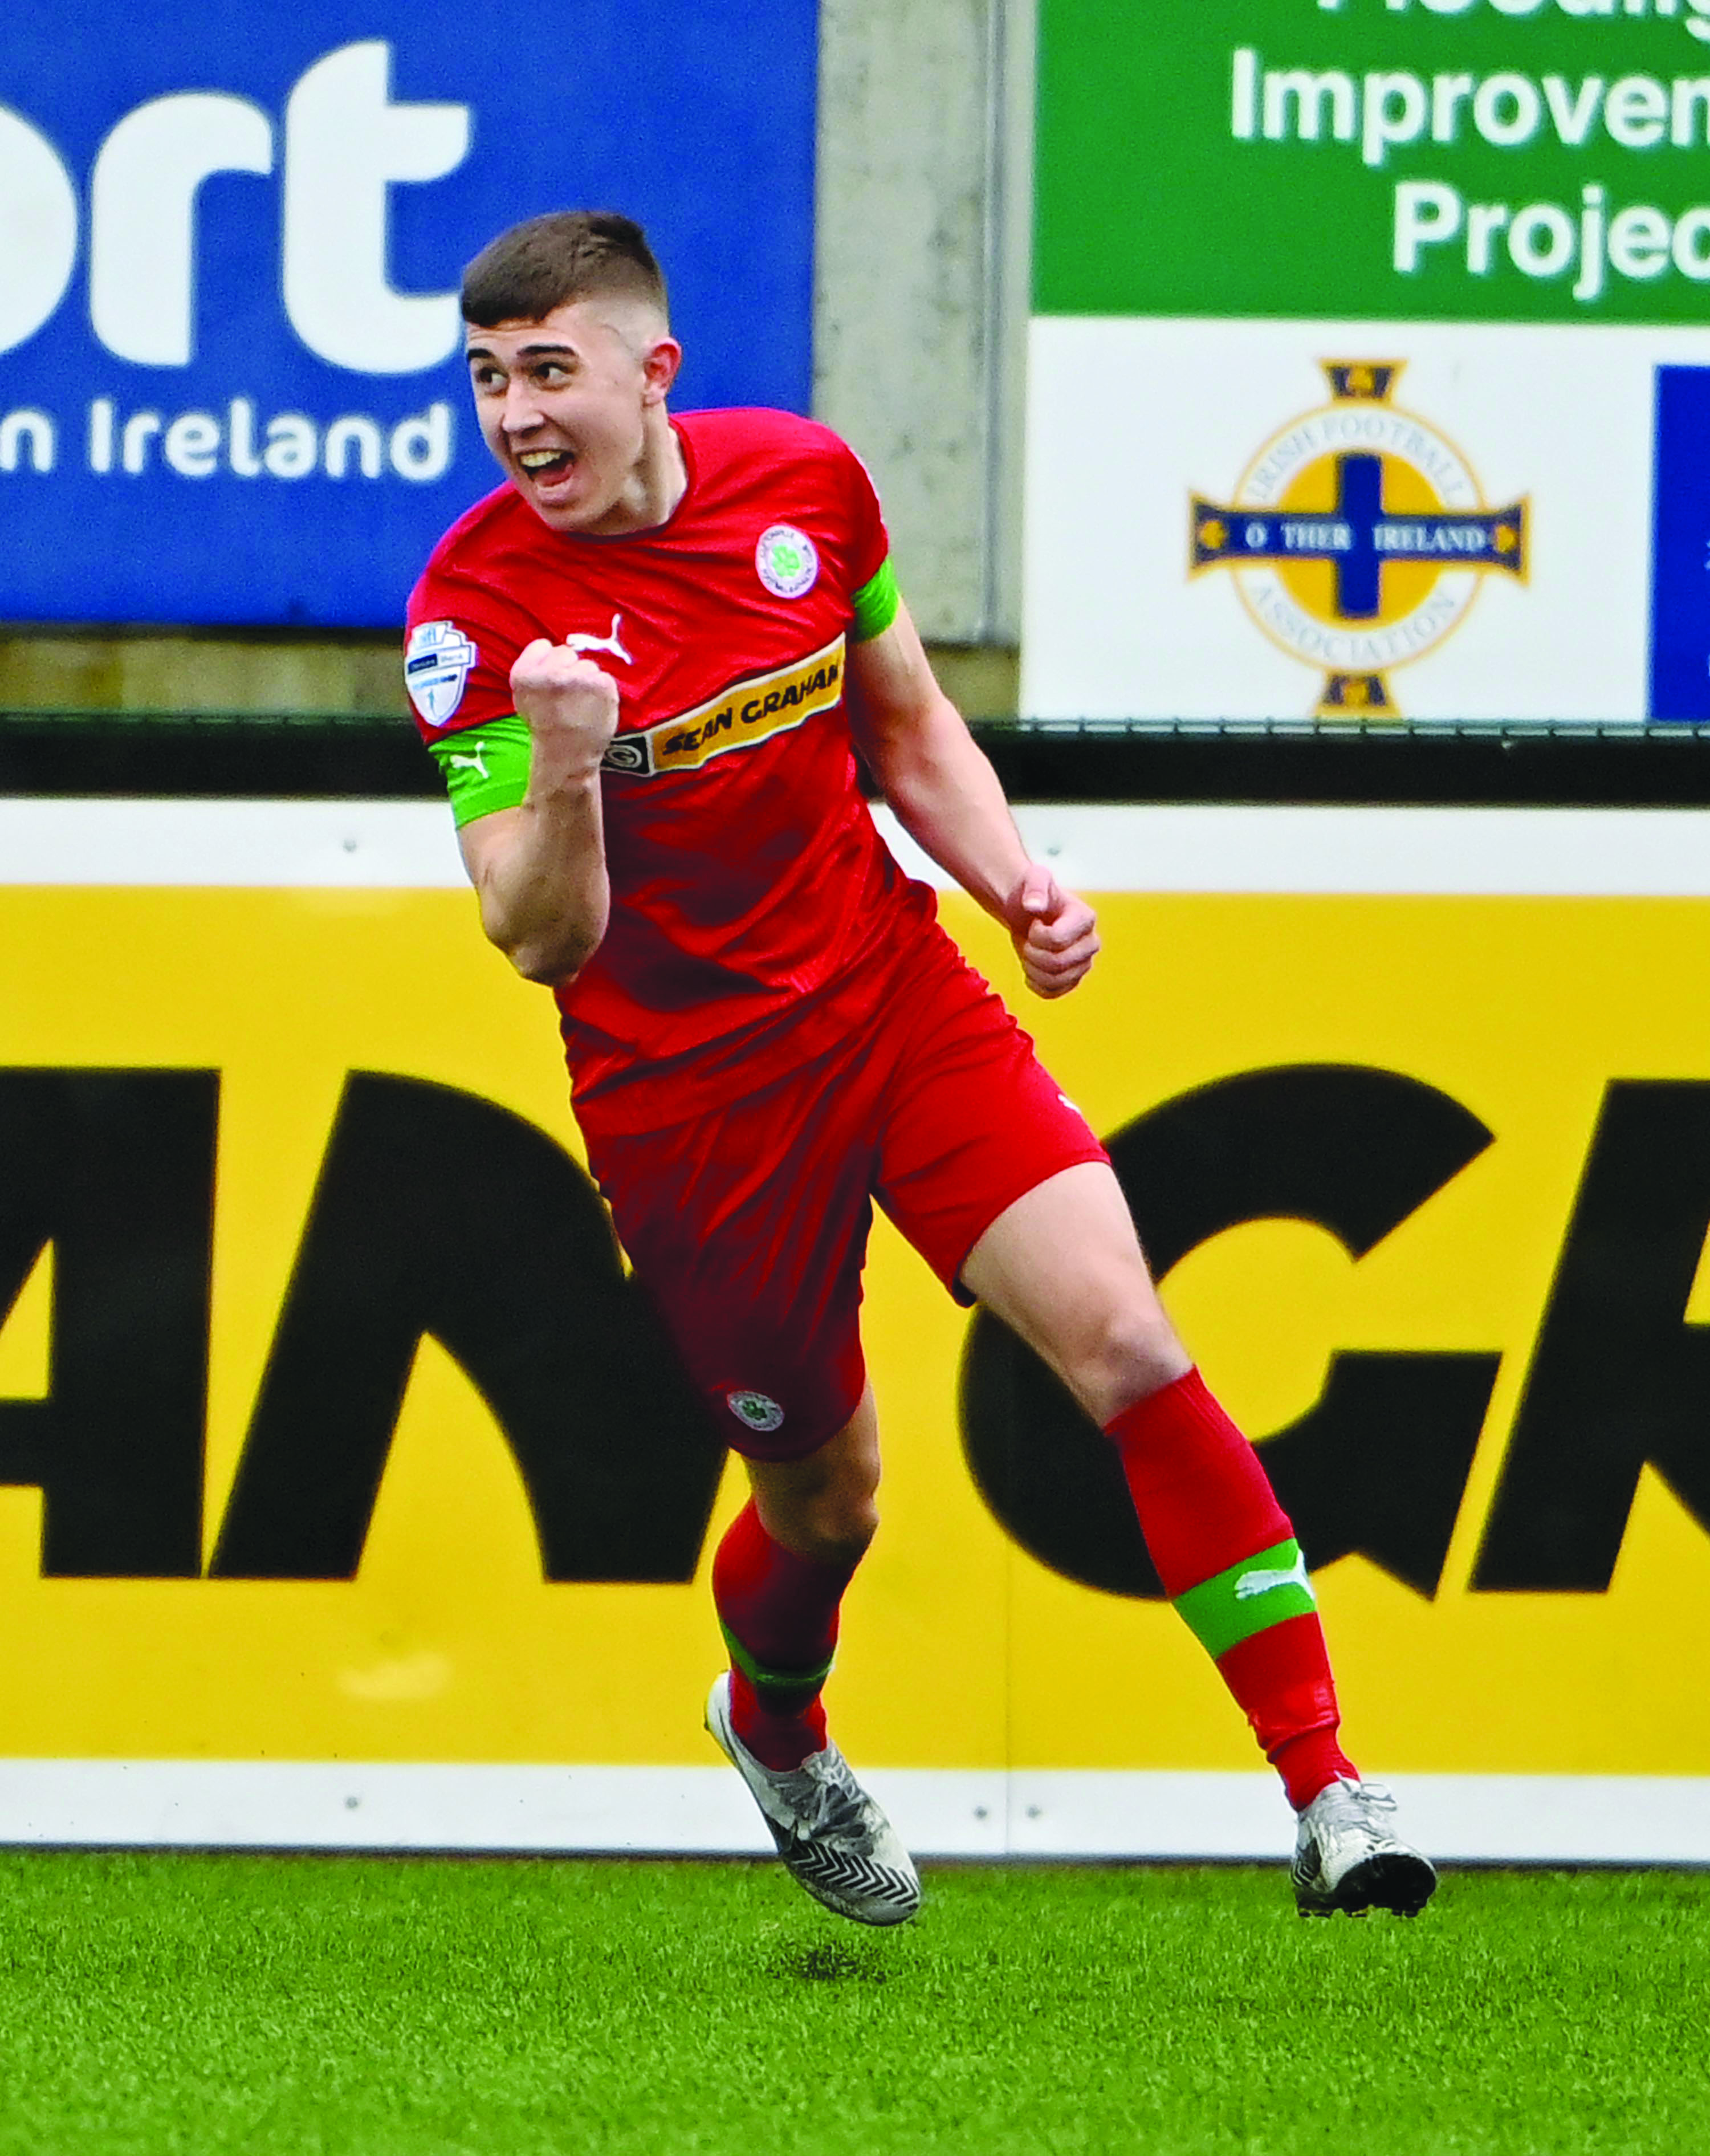 Cliftonville manager Paddy McLaughlin says the postponement of Tuesday's game against Glentoran will have allowed a number of players including Paul O'Neill to recover from knocks ahead of Saturday's trip to Warrenpoint Town